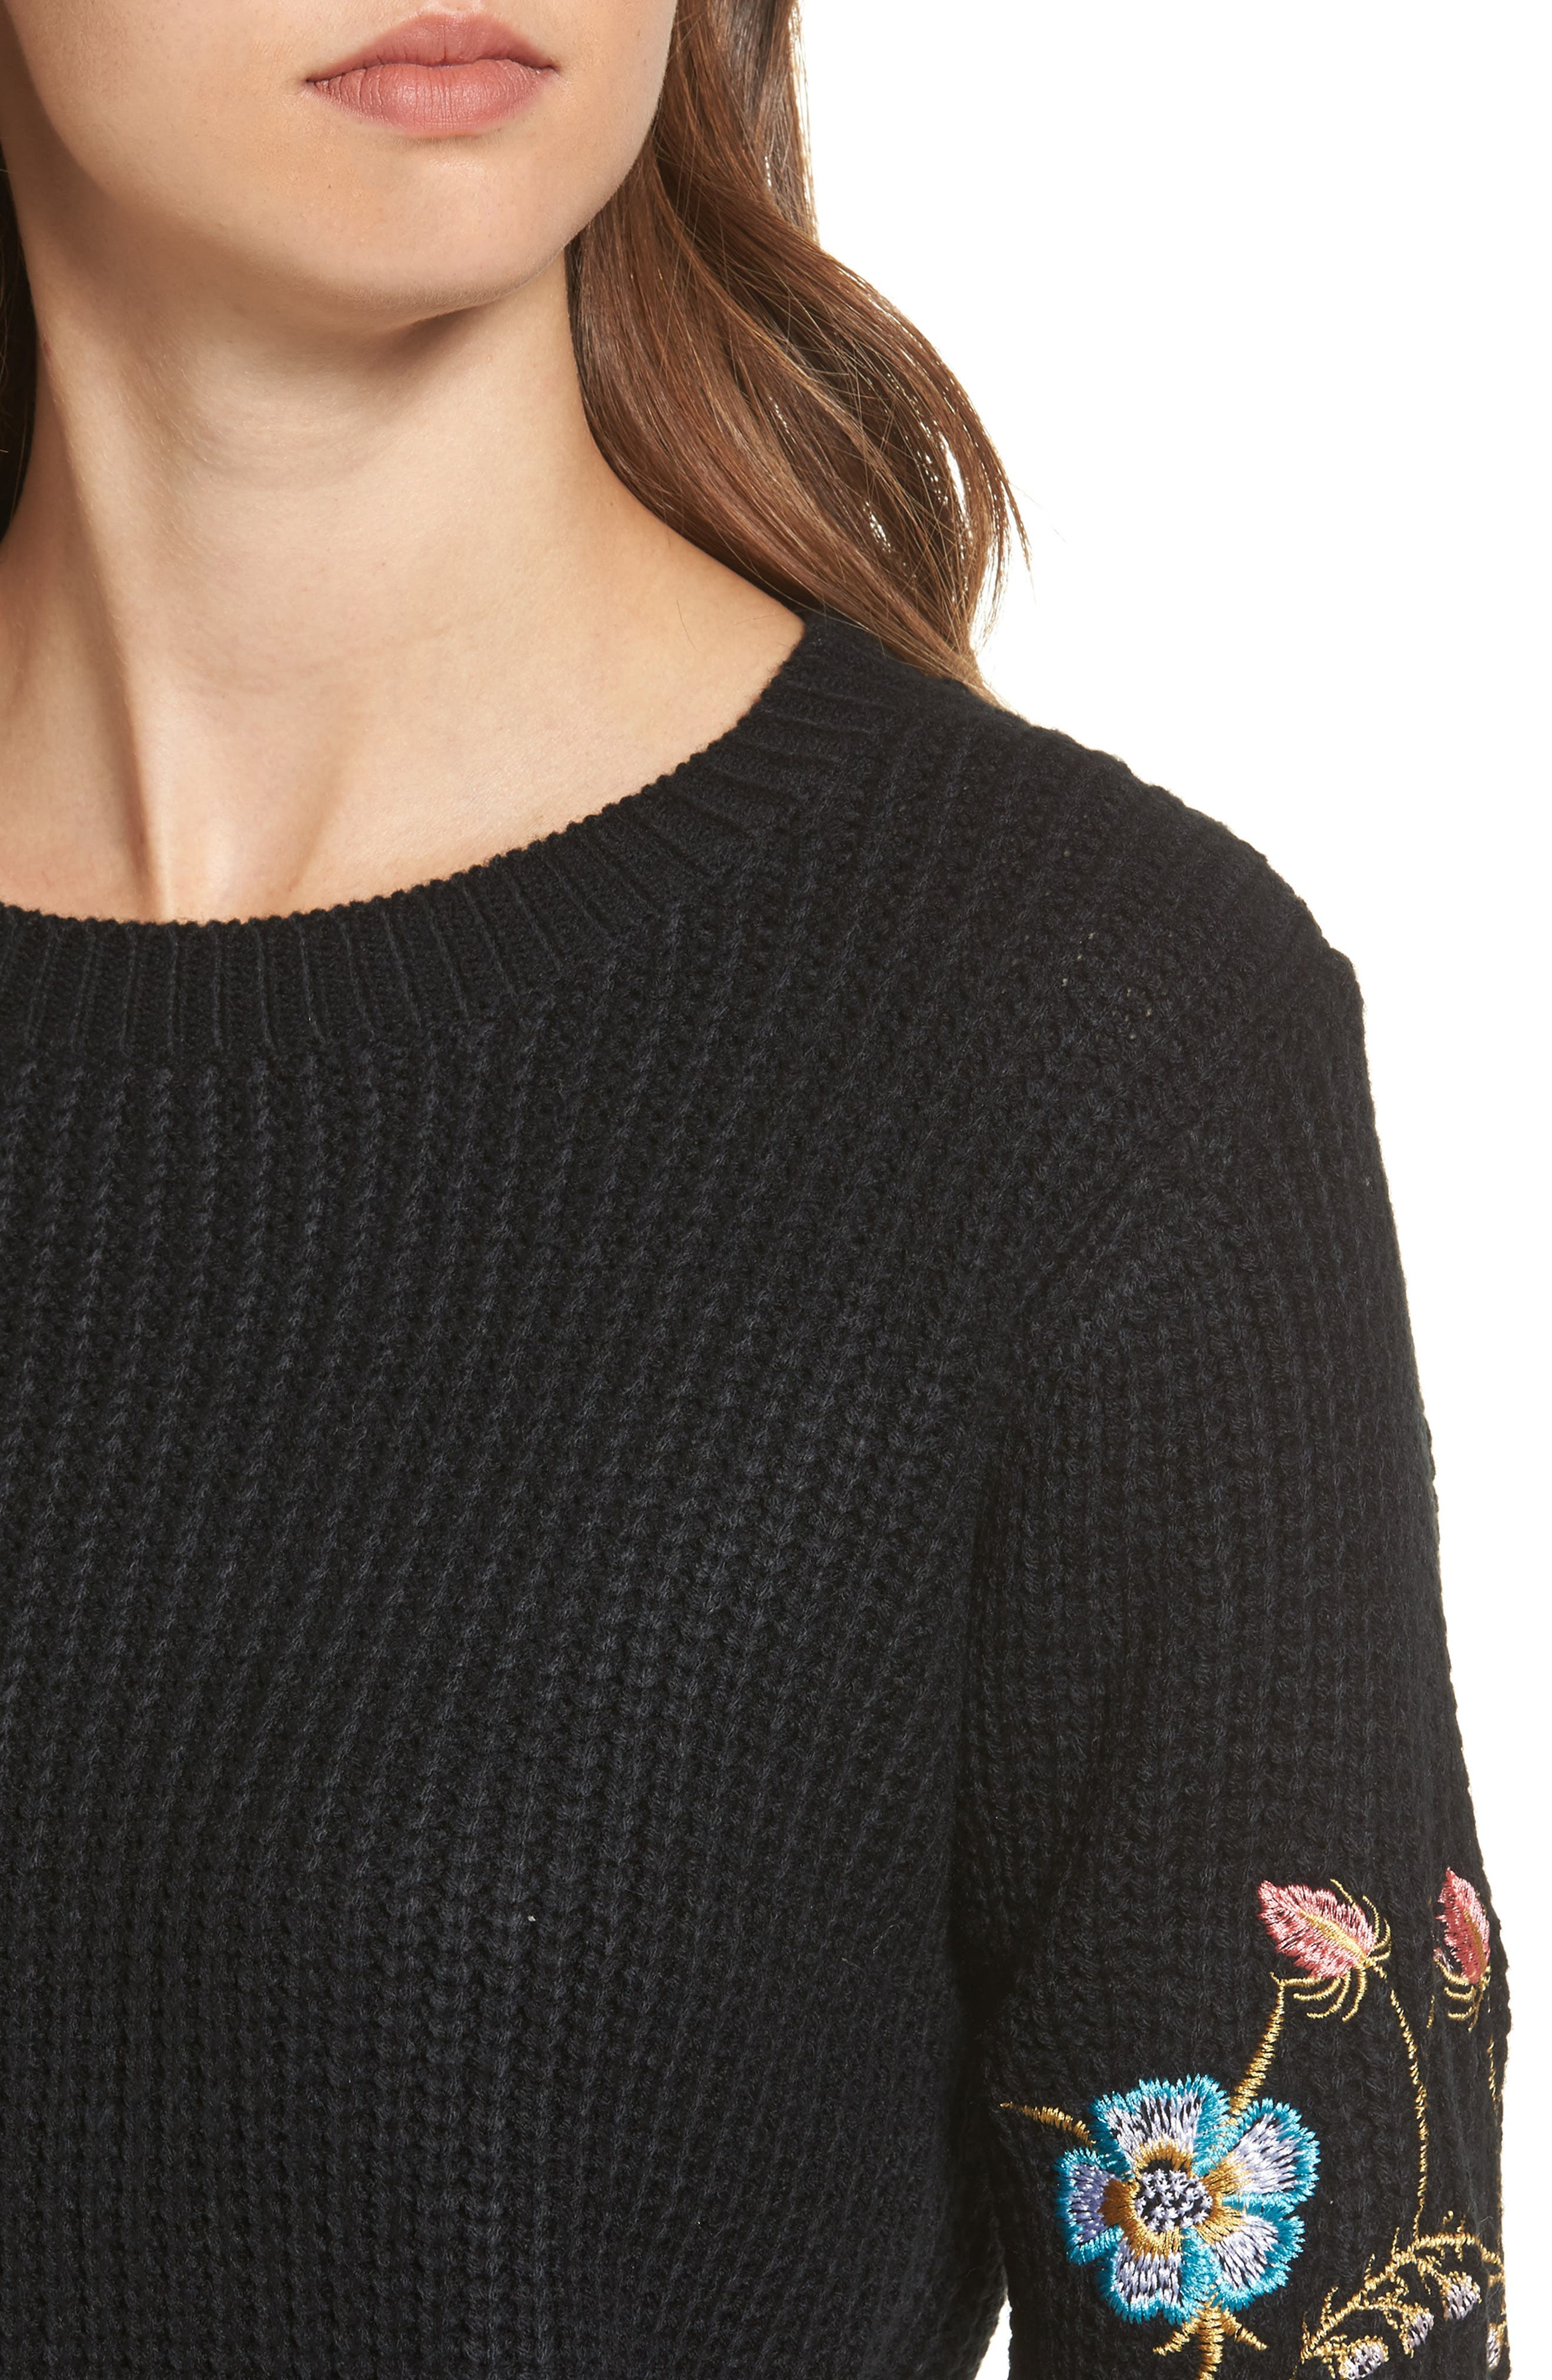 Embroidered Waffle Stitch Sweater,                             Alternate thumbnail 4, color,                             Black